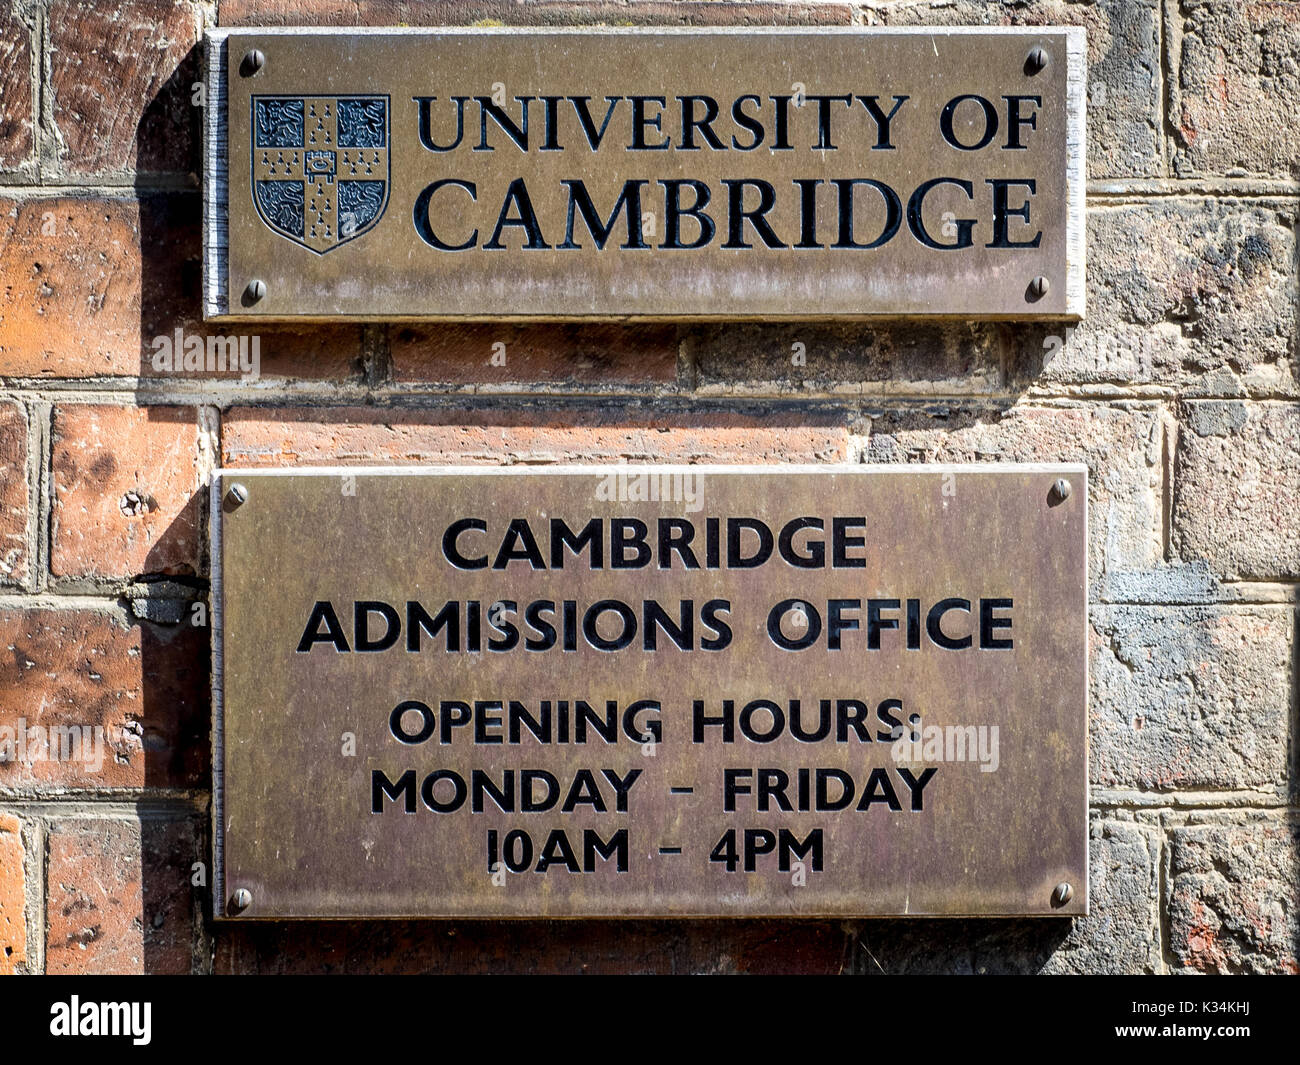 Cambridge University Admissions Office - signs outside the Cambridge University admissions office - Stock Image